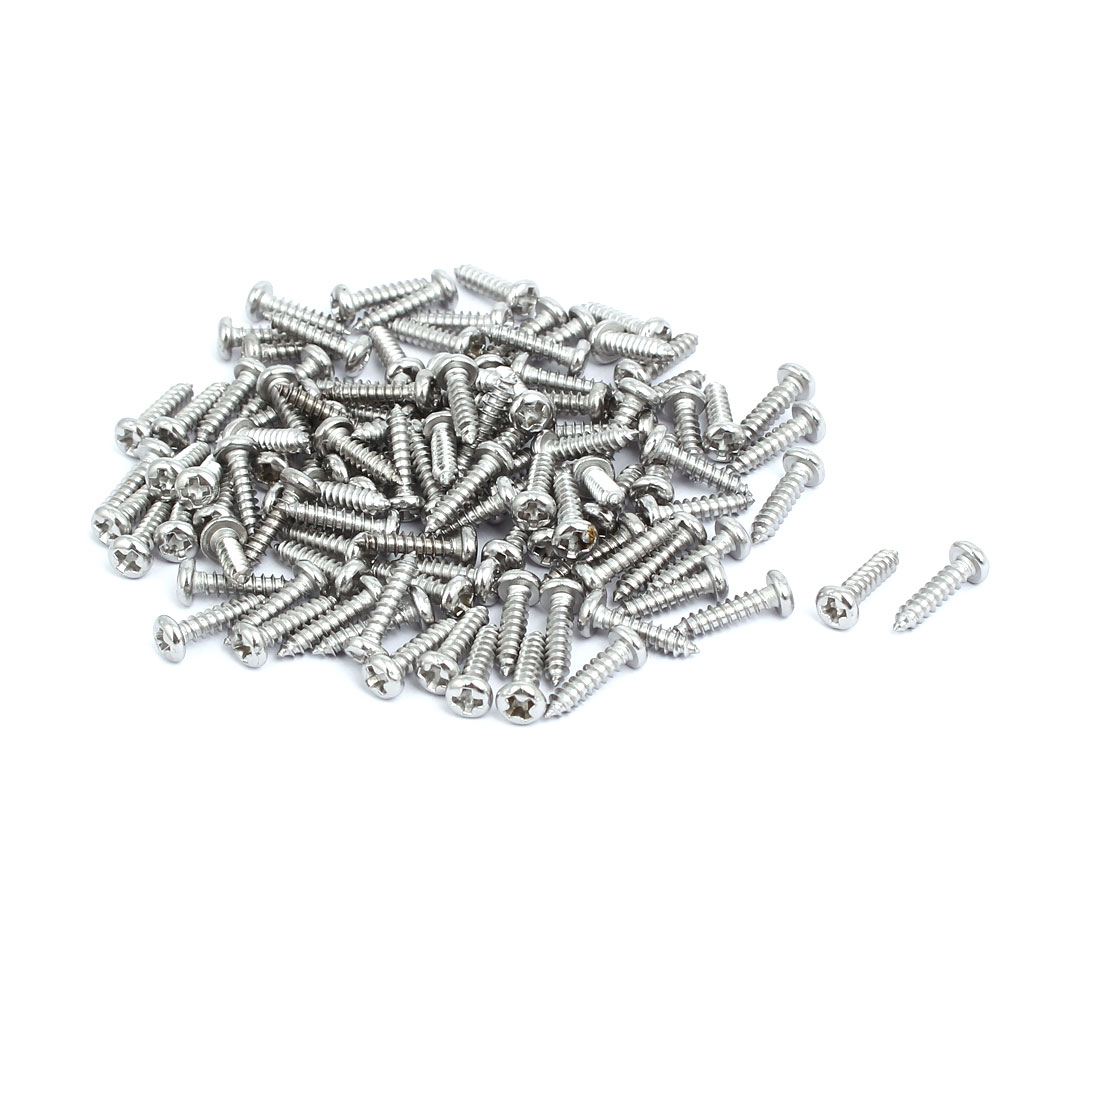 M3x12mm 304 Stainless Steel Phillips Drive Pan Head Self Tapping Screws 150pcs